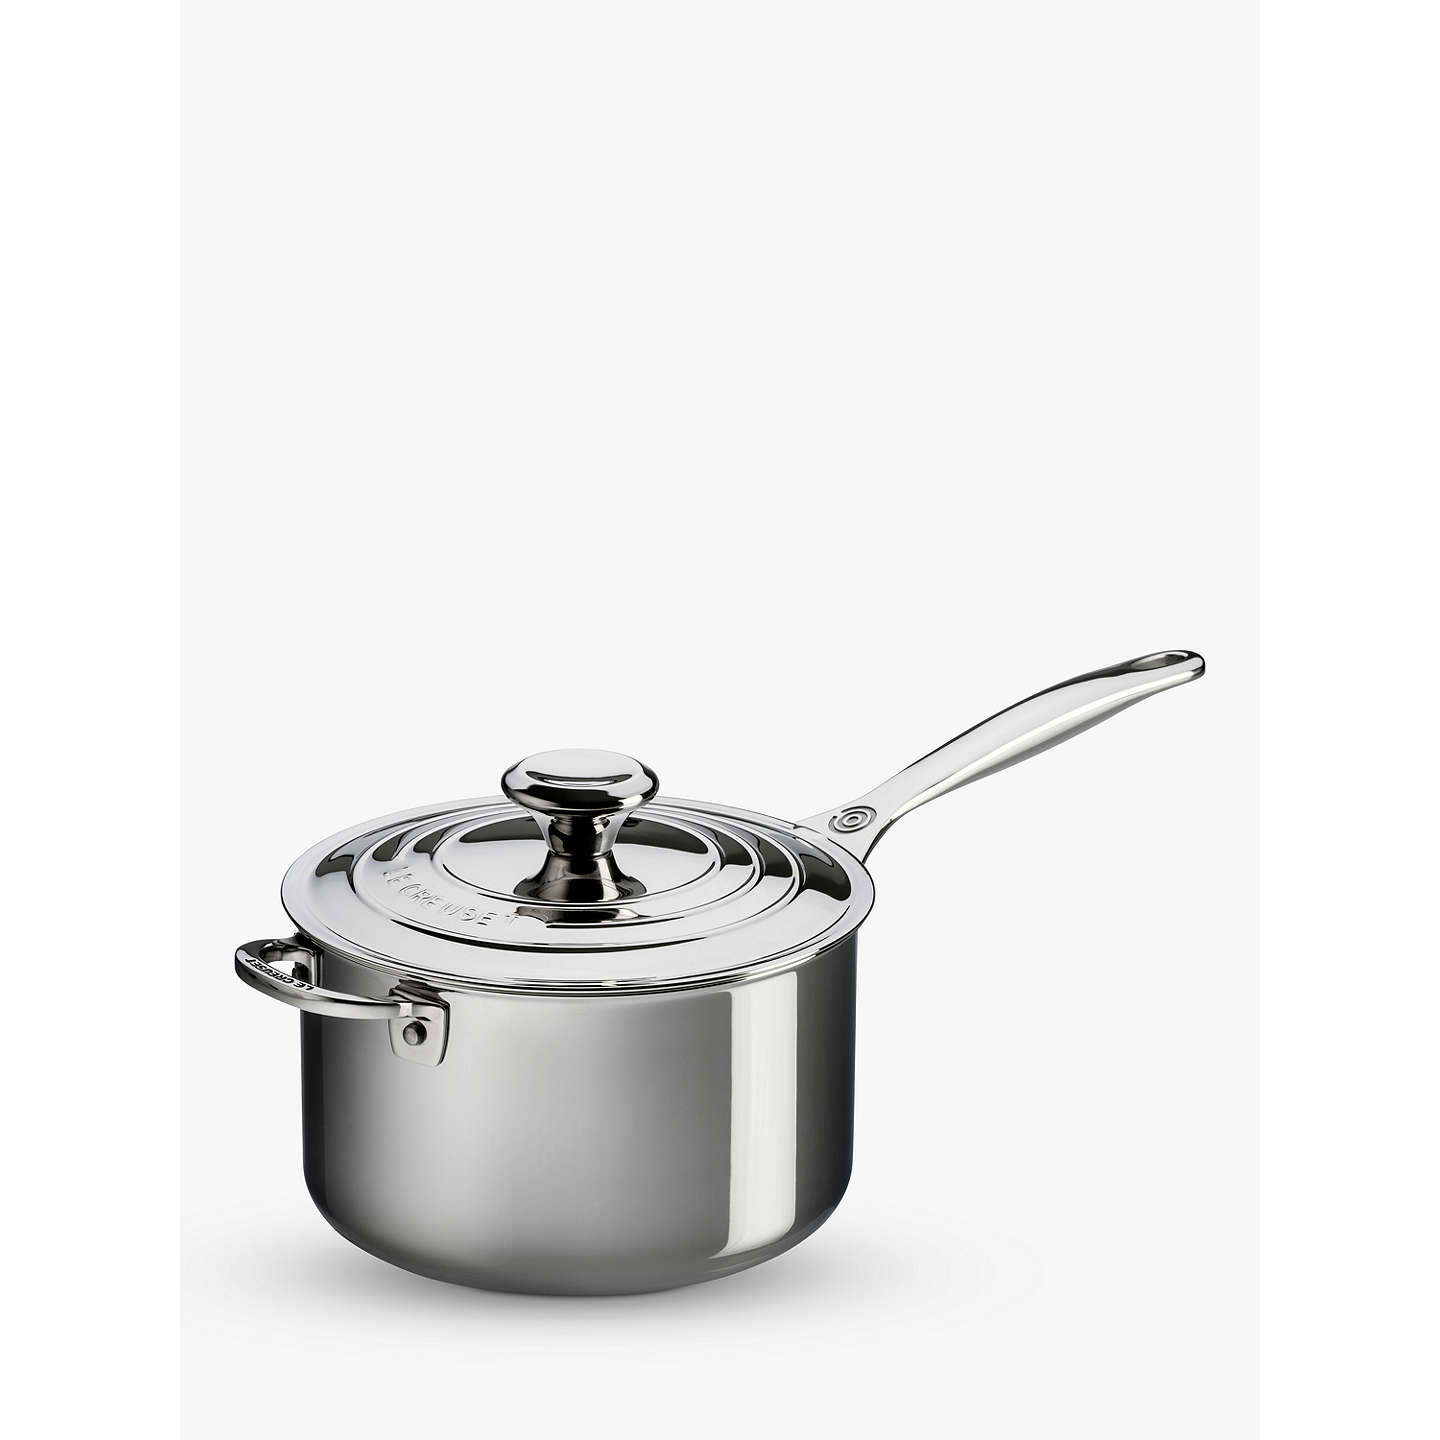 le creuset signature 3 ply stainless steel saucepan at john lewis. Black Bedroom Furniture Sets. Home Design Ideas